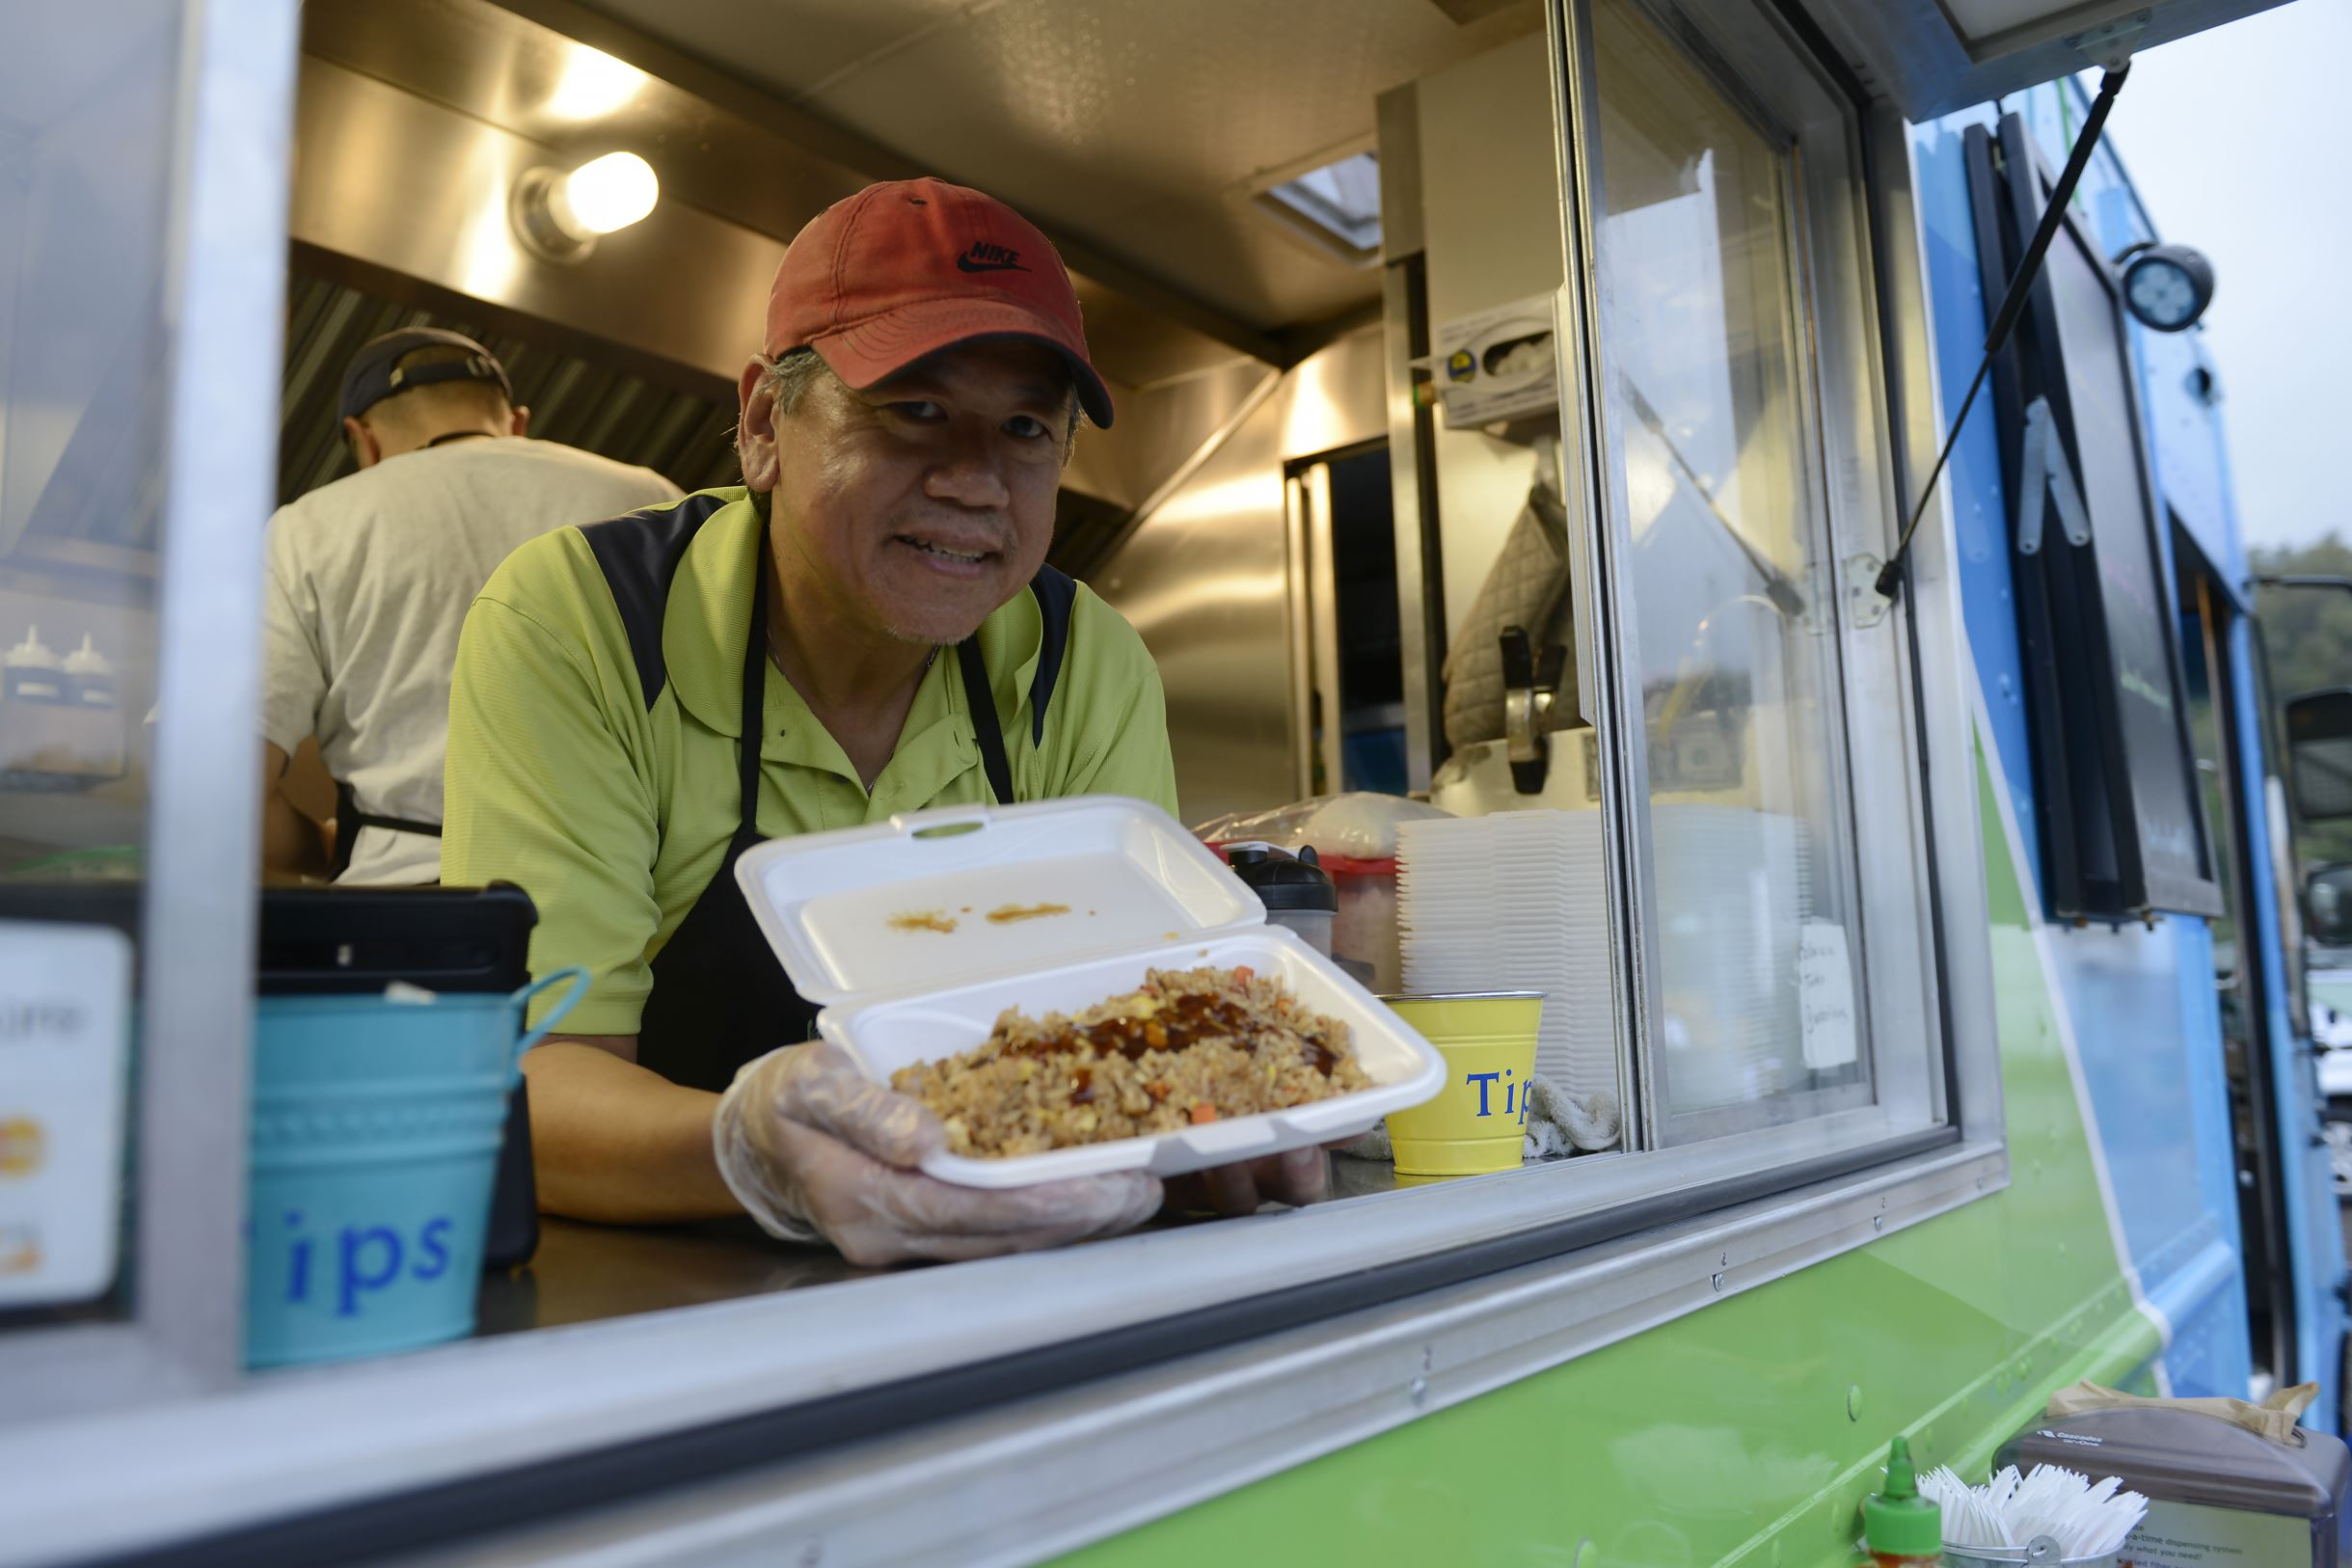 20151009rldFoodTrucks05-4 Jack Jew, owner of the Wok of Life food truck, holds a popular dish, chicken fried rice, at Heidelberg Park in Heidelberg on Friday, October 9, 2015.